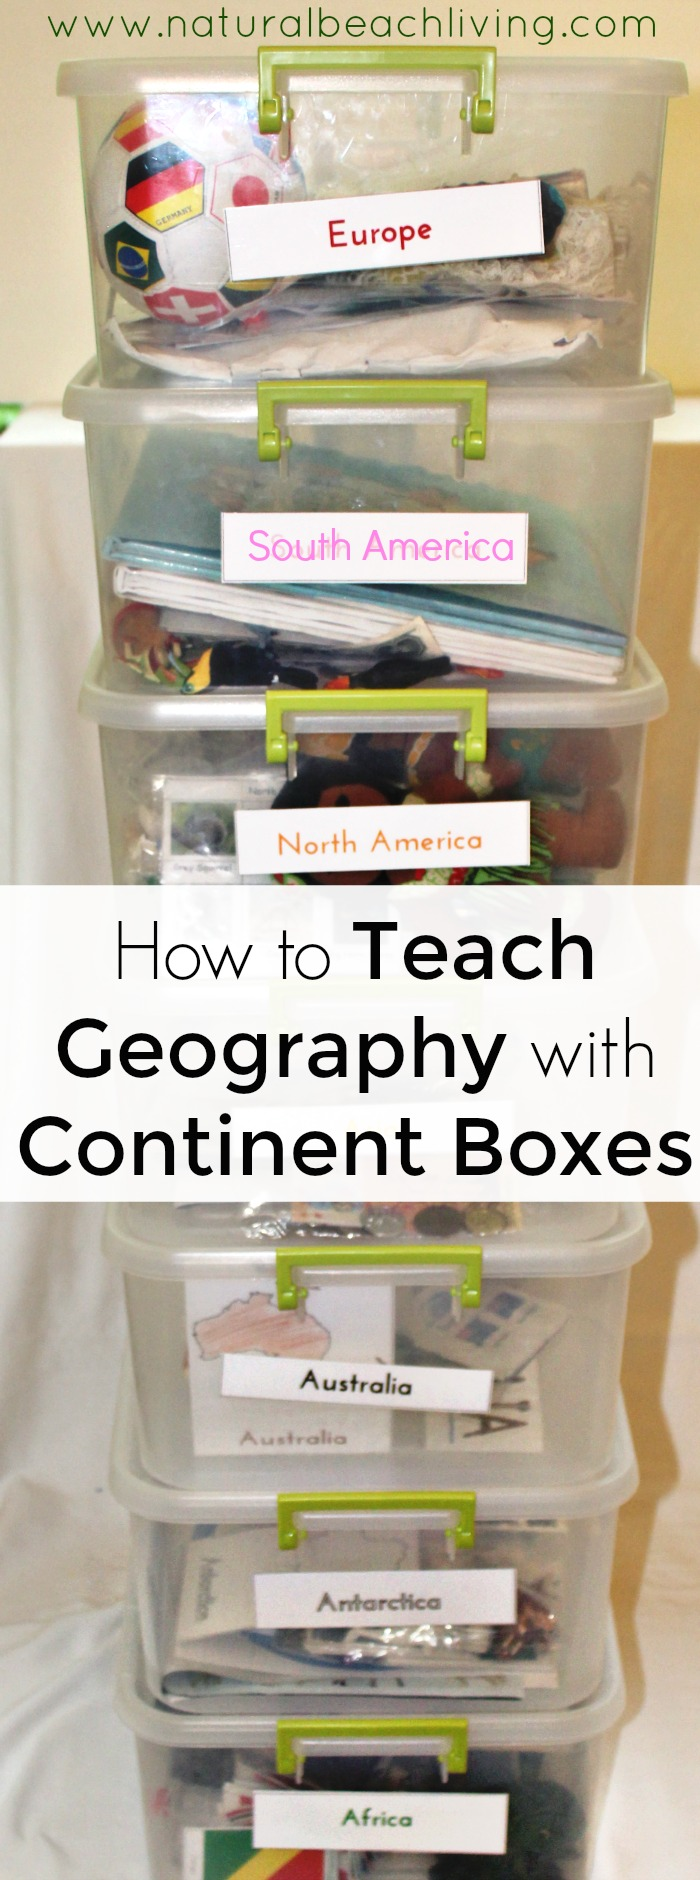 How to Teach Geography with Continent Boxes